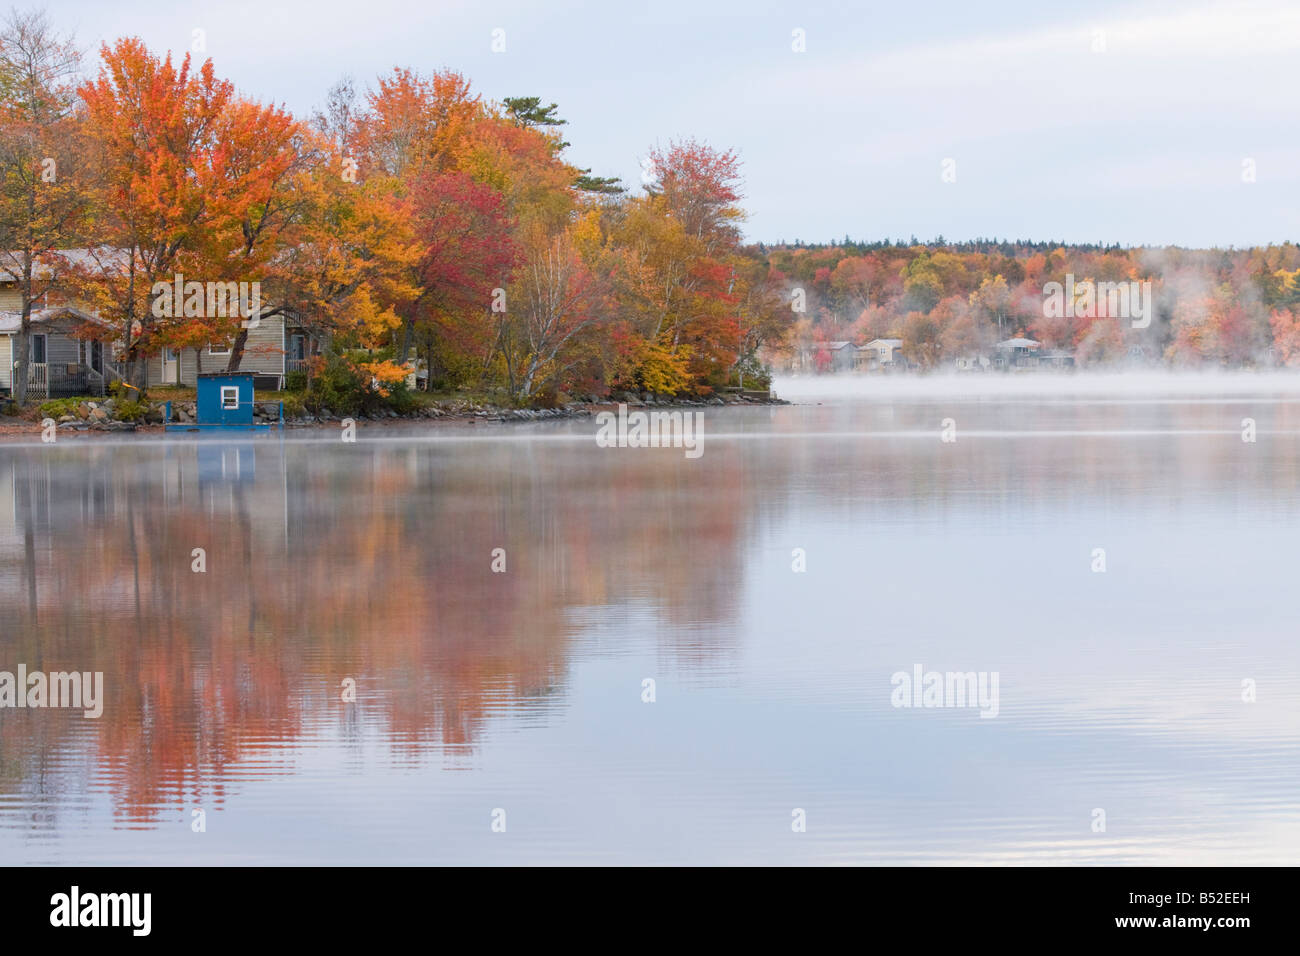 Fall colours on the shores of Fletcher Lake - Fall River, Nova